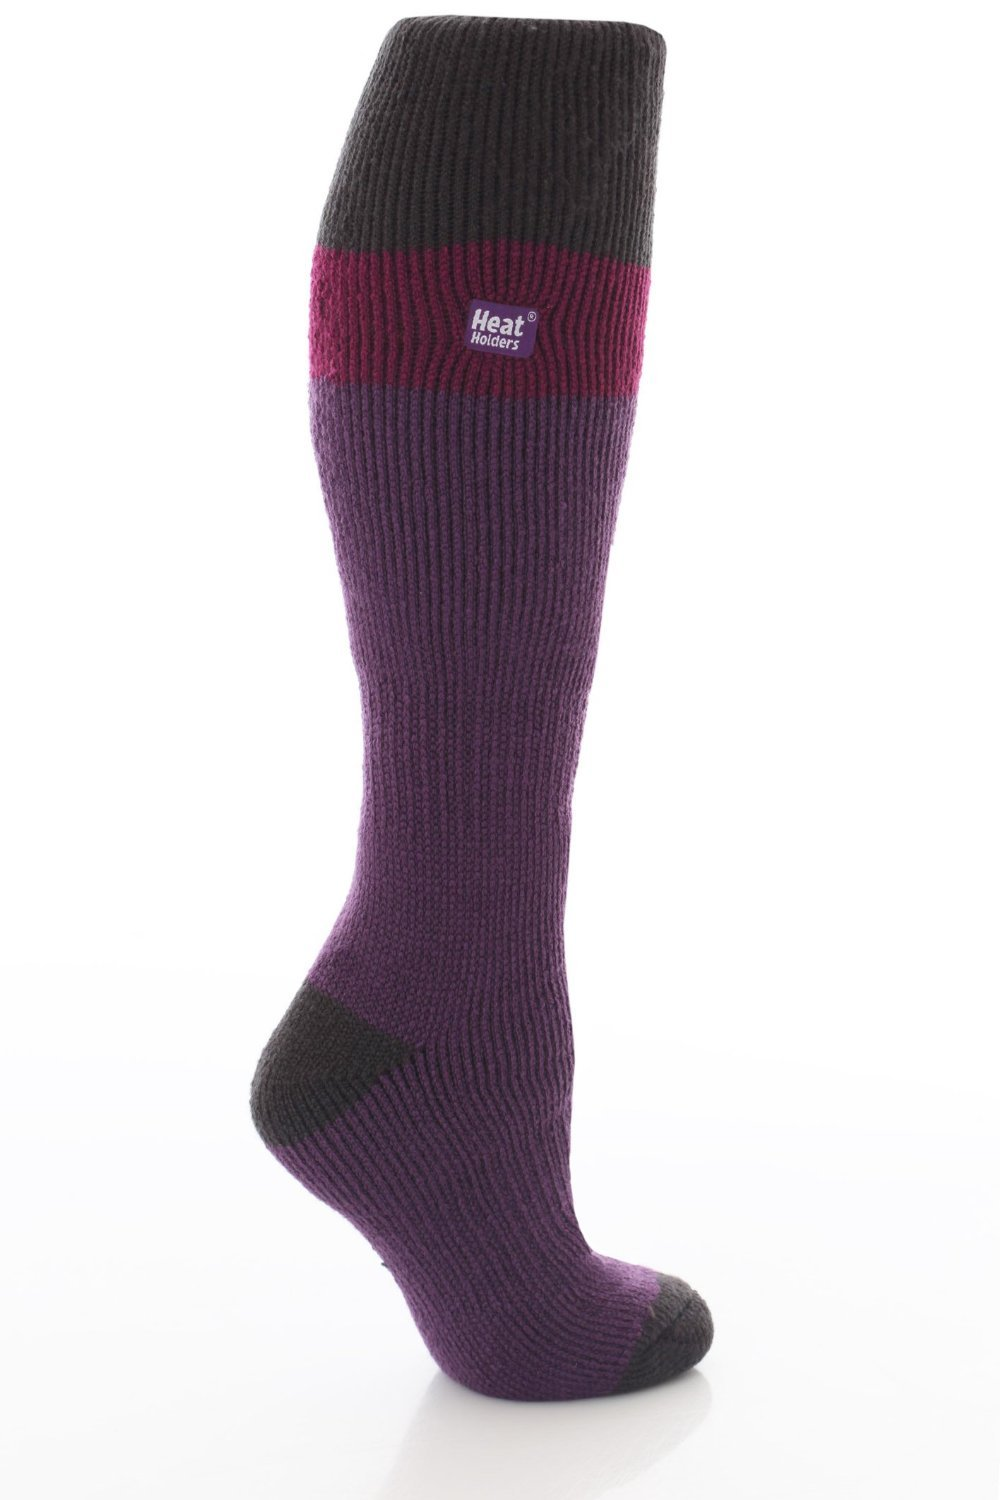 Womens Purple/Black Heat Holders Thermal Ski Socks 4-8